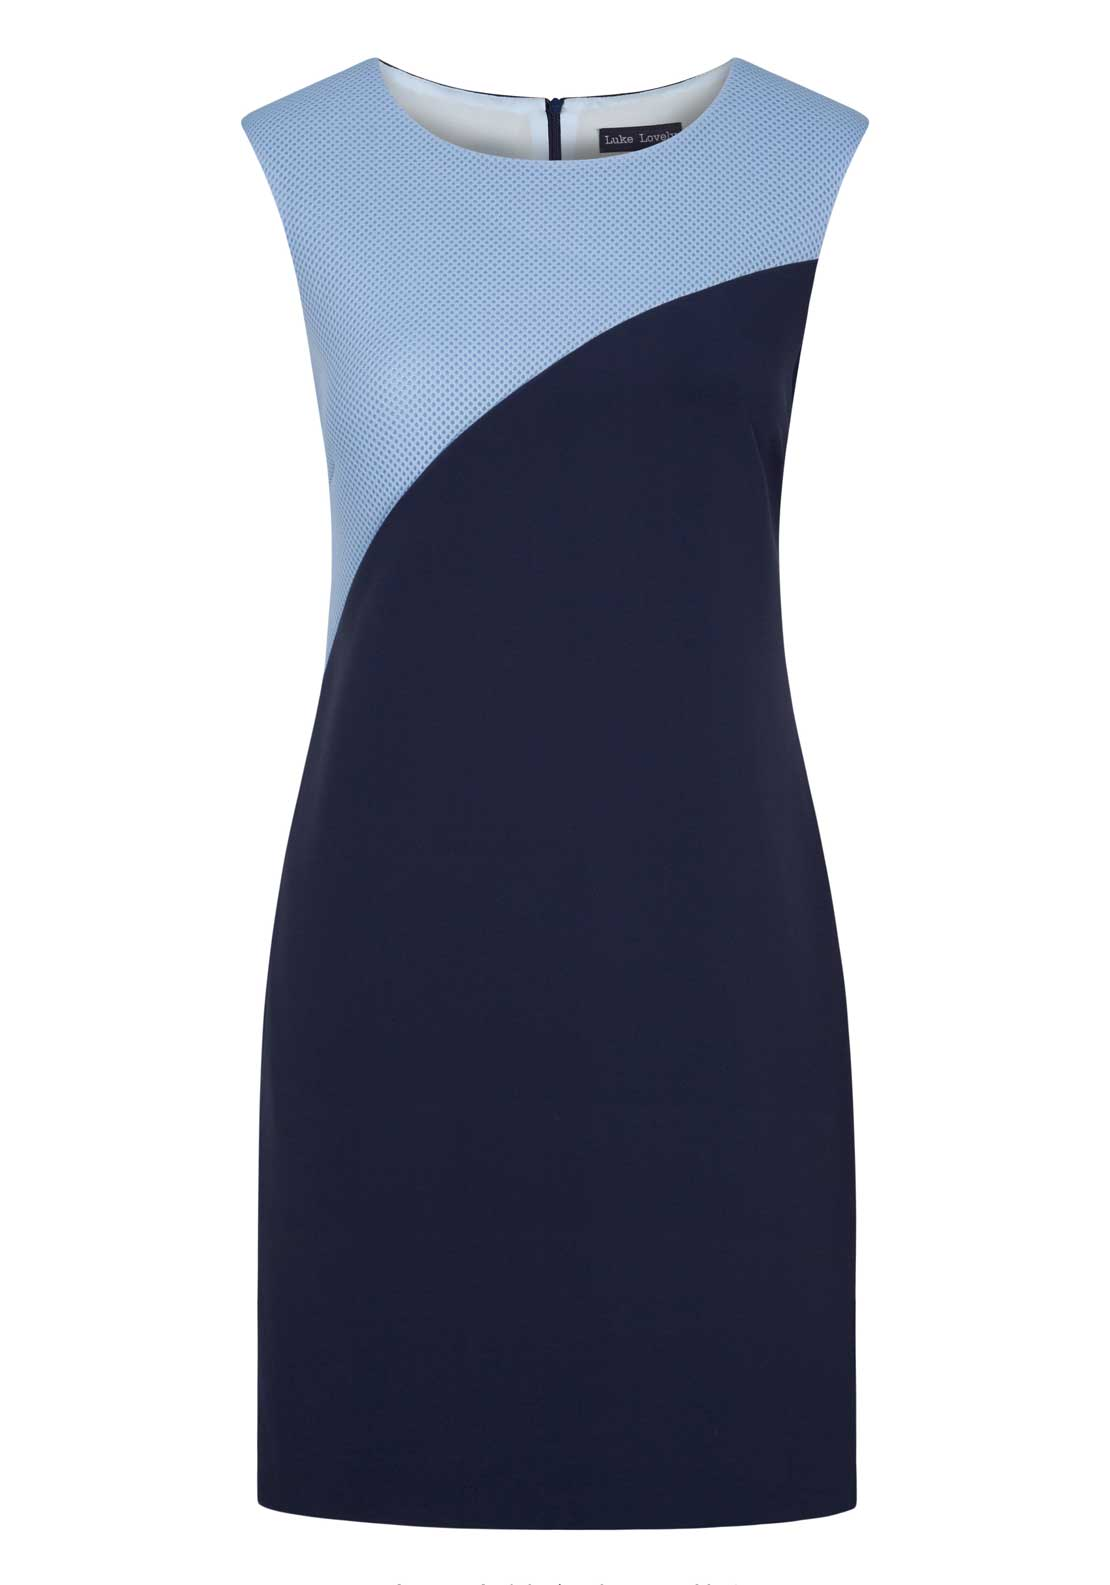 Luke Lovely Contrast Panel Sleeveless Shift Dress, Navy